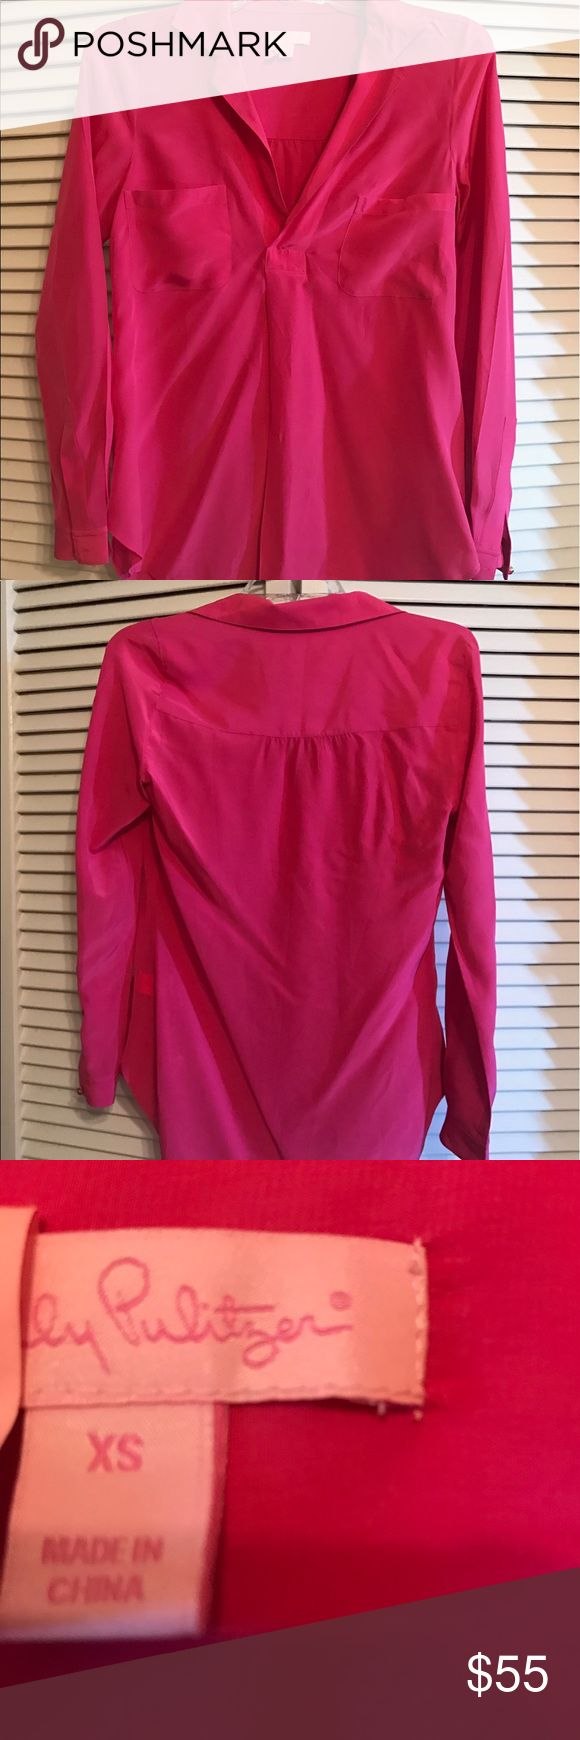 Lilly Pulitzer Hot Pink Silk Blouse XS Beautiful, barely worn Lilly Pulitzer hot pink silk blouse. Perfect to throw on with jeans or dress up for work! Lilly Pulitzer Tops Blouses